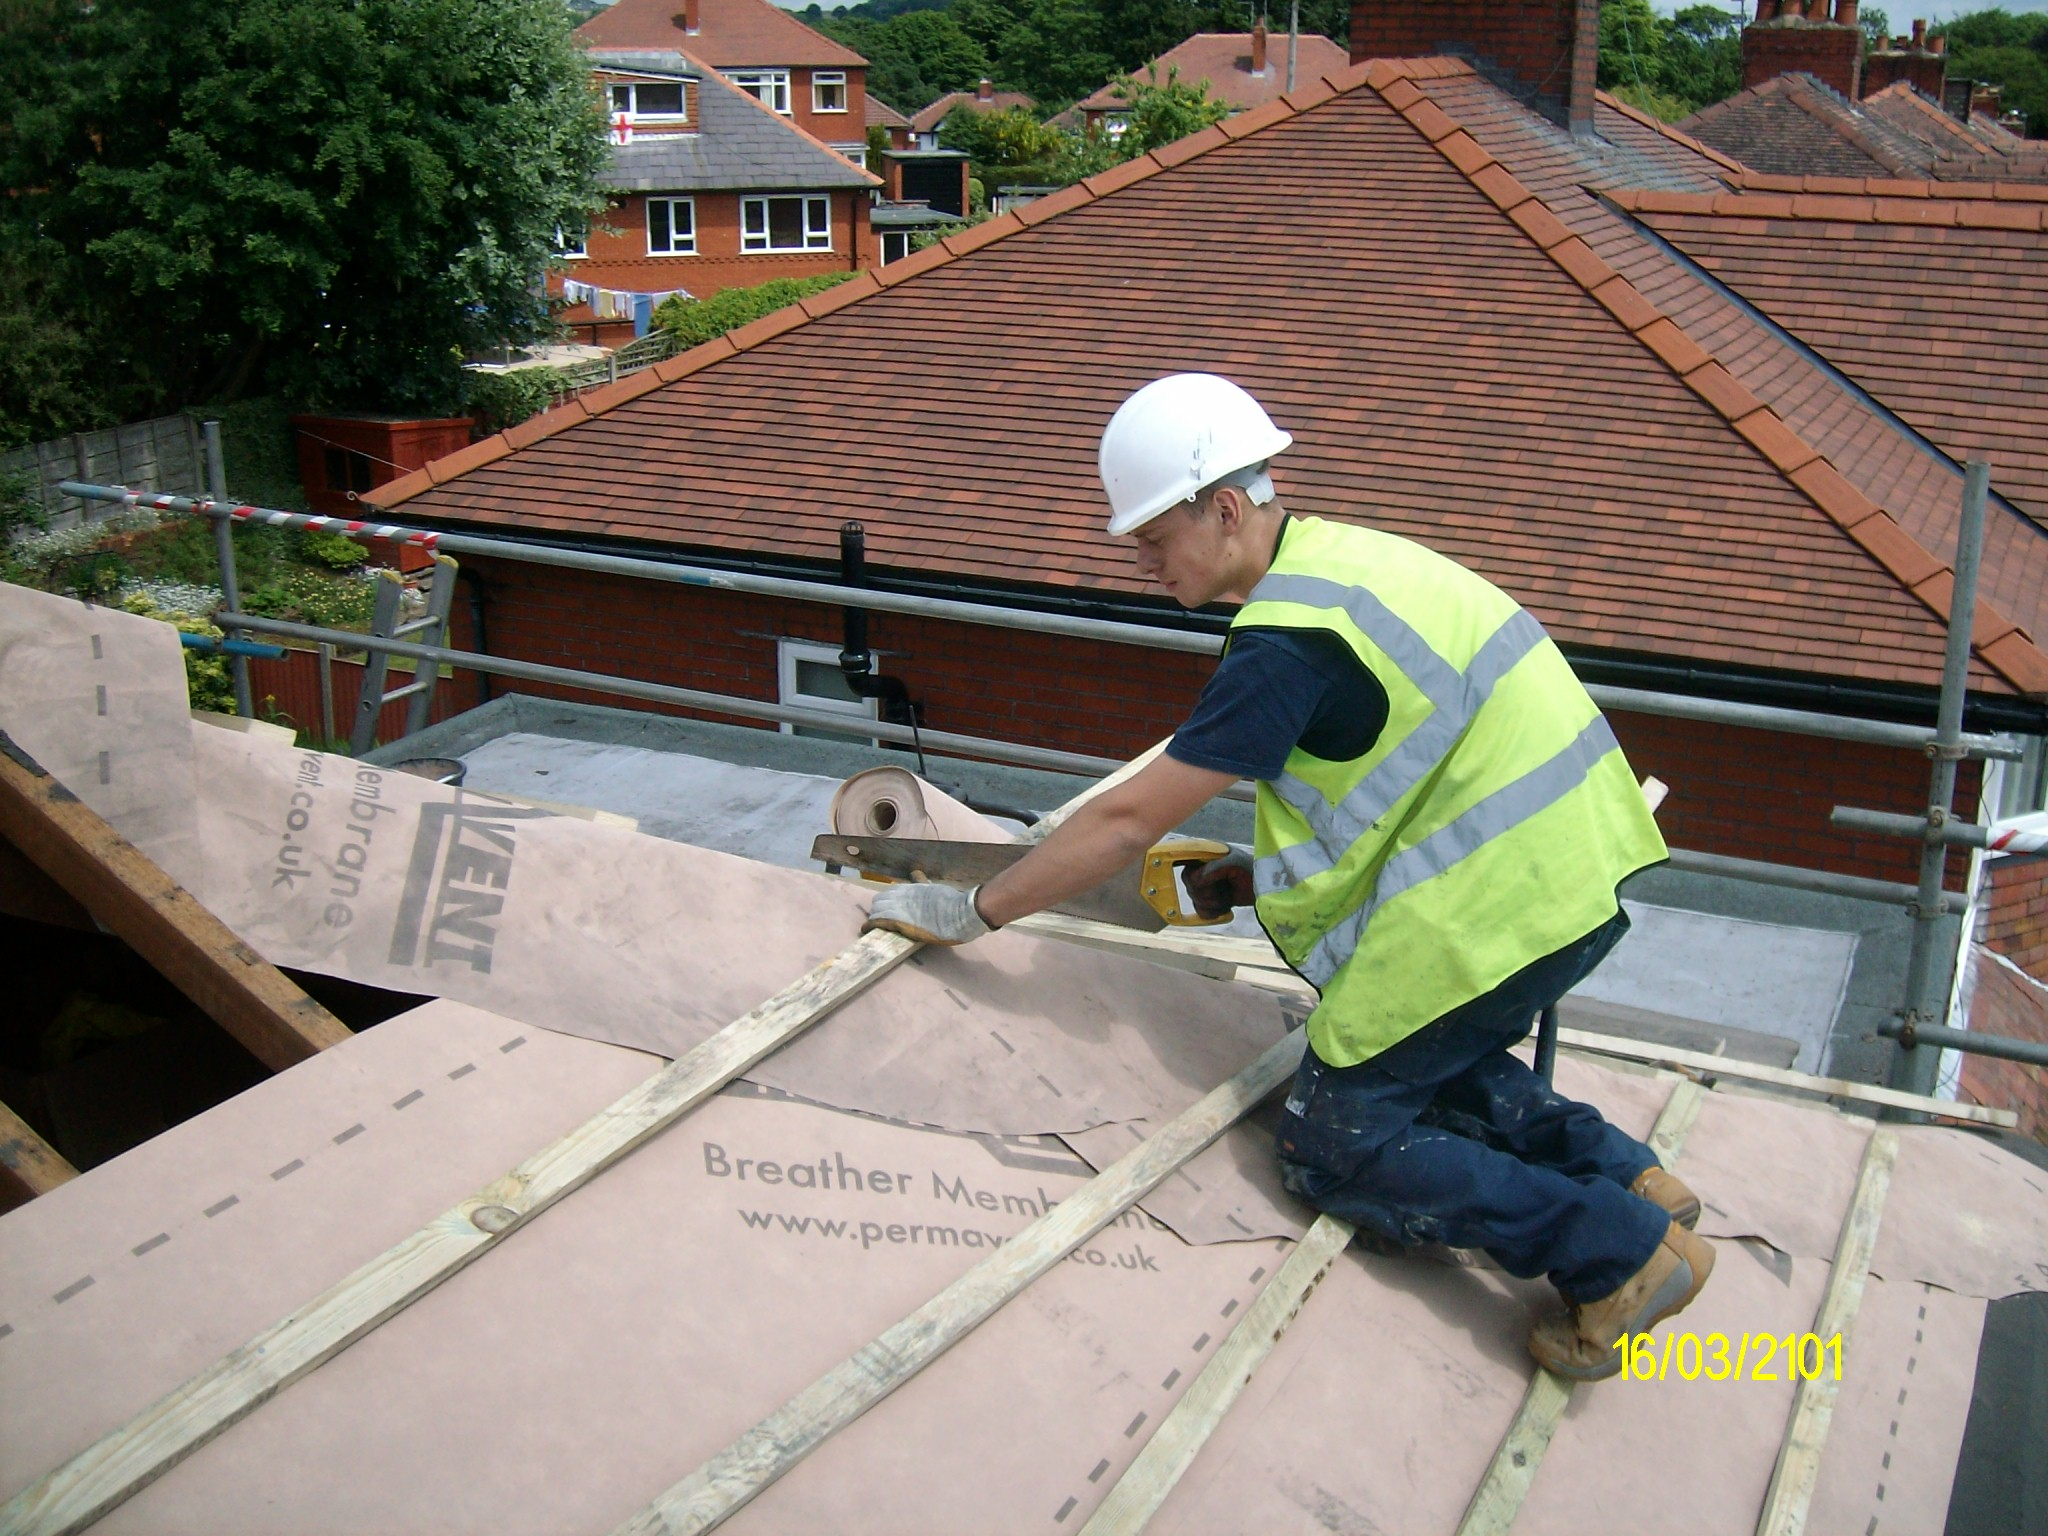 Pitched Roofing Tileing